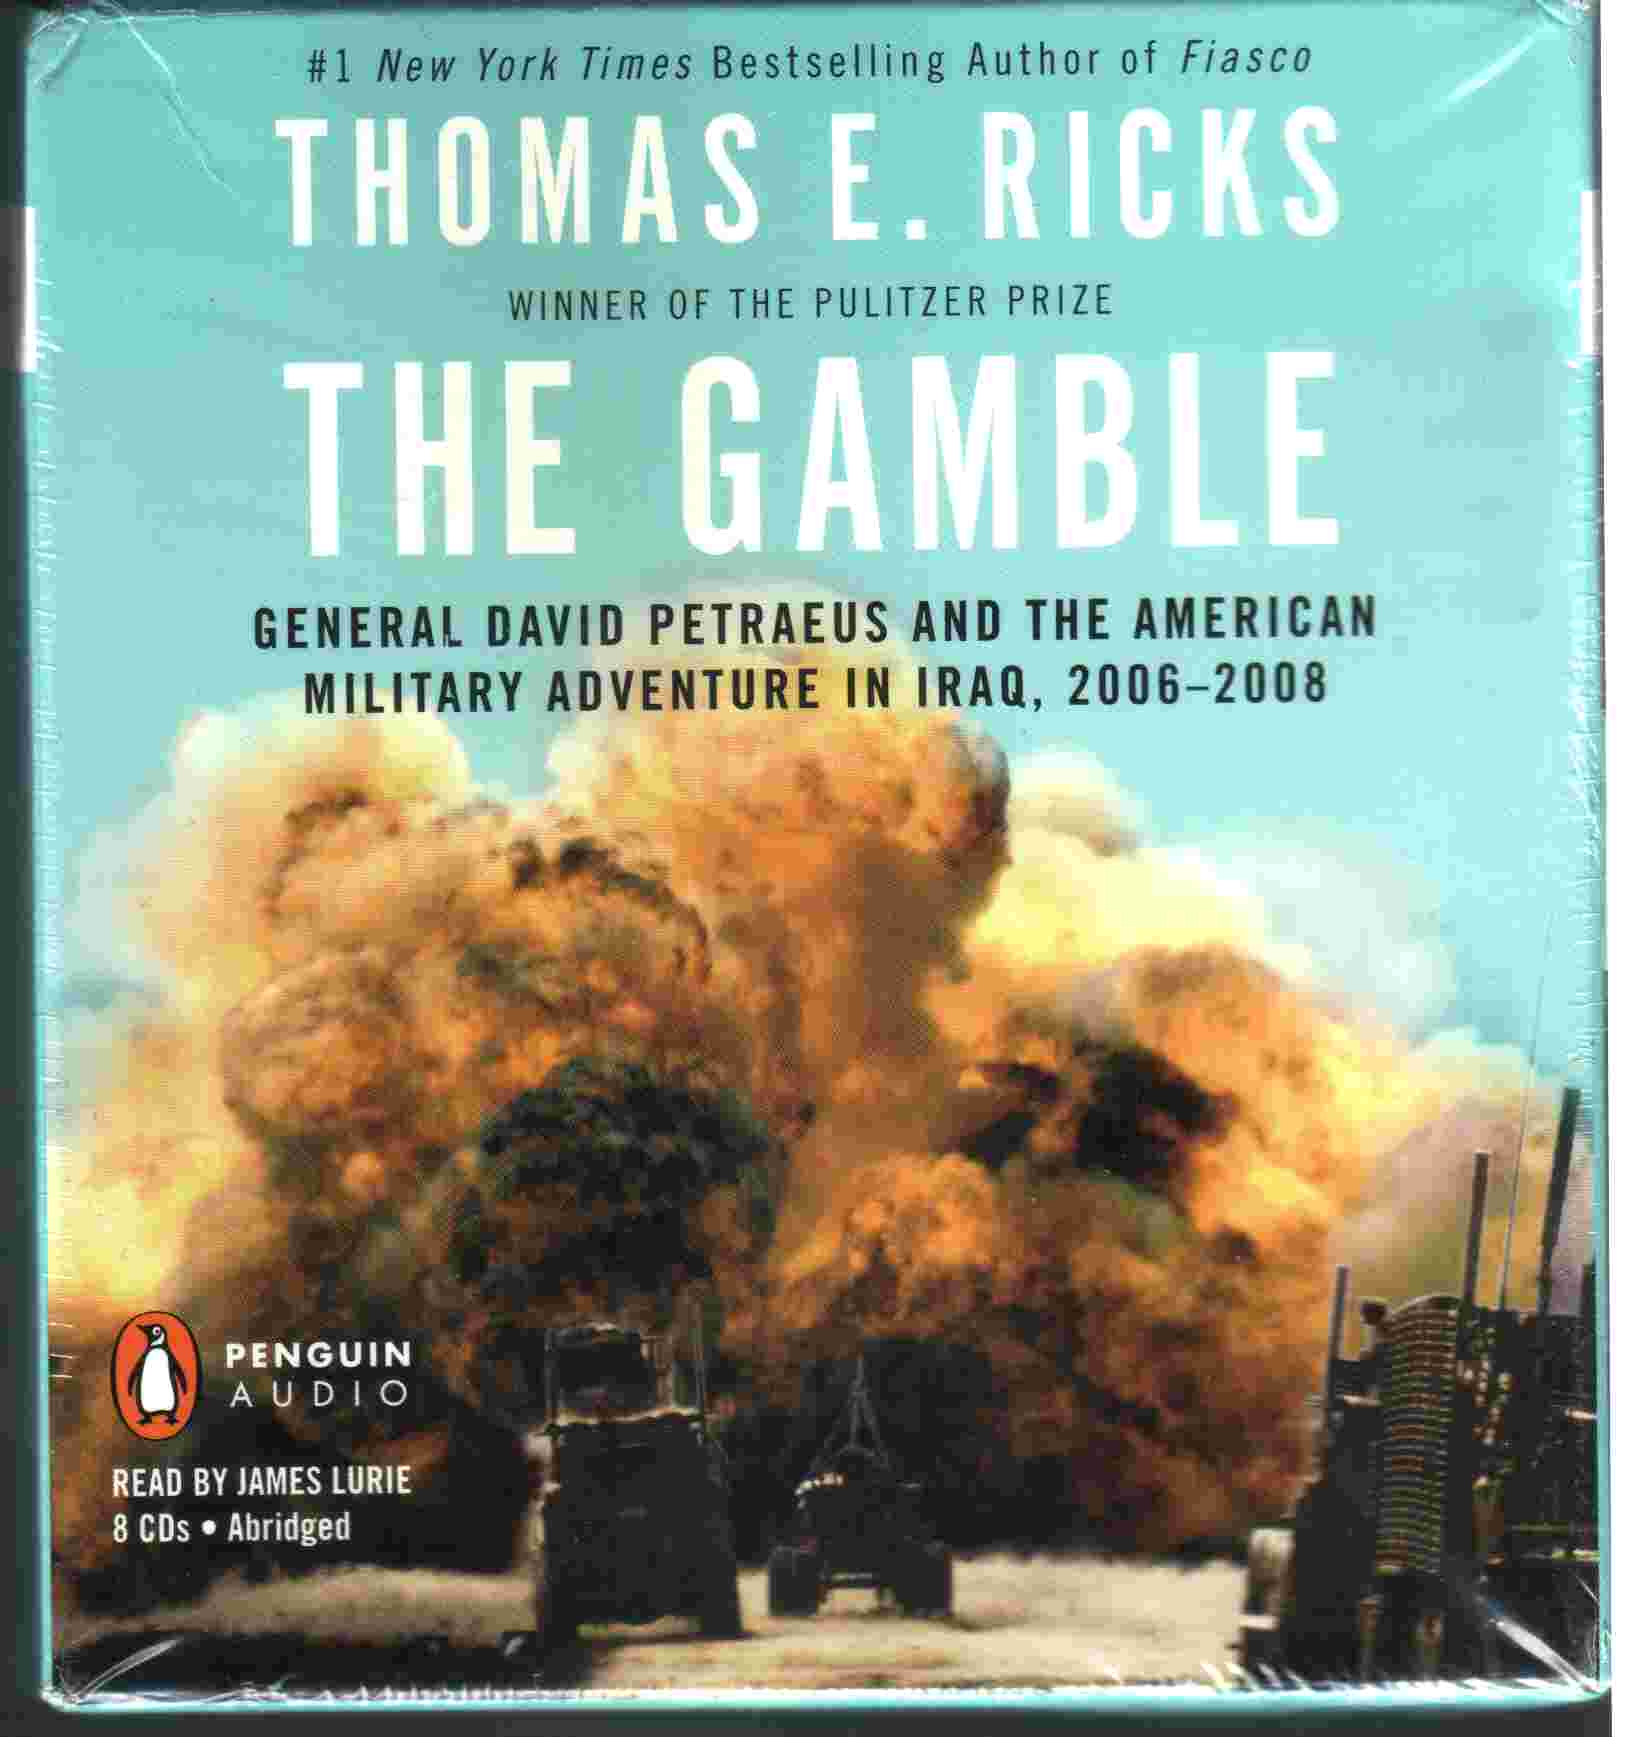 the gamble general petraeus and the The gamble: general petraeus and the american military adventure in iraq, 2006-2008.